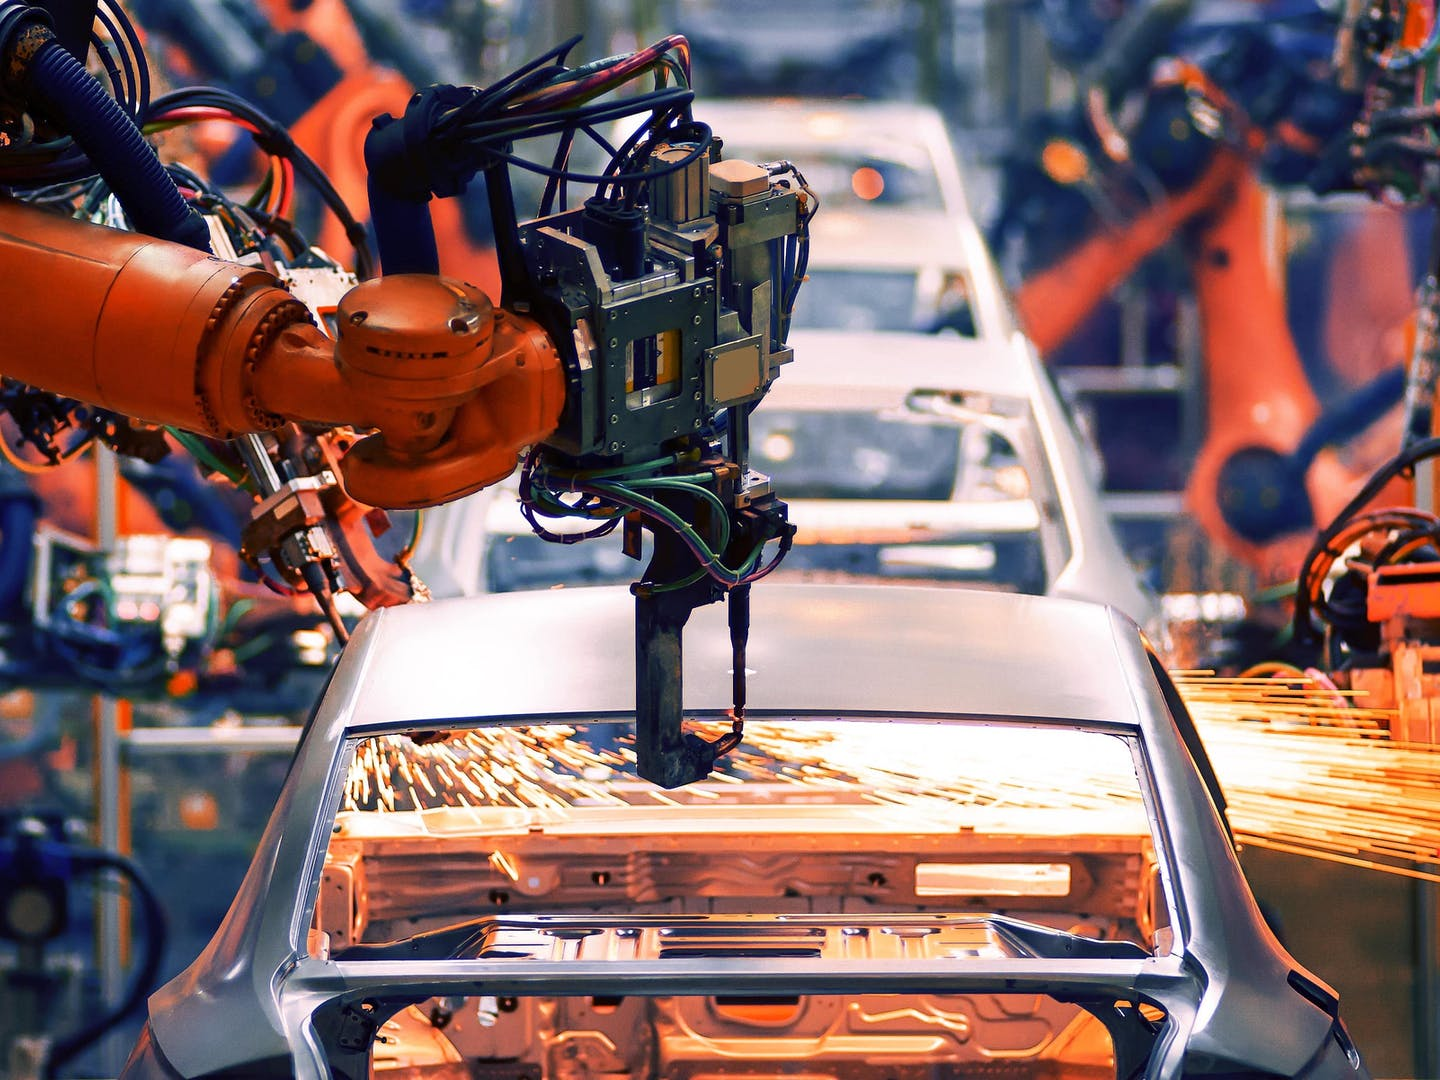 Industry spotlight automotive tips for choosing the best automotive erp software